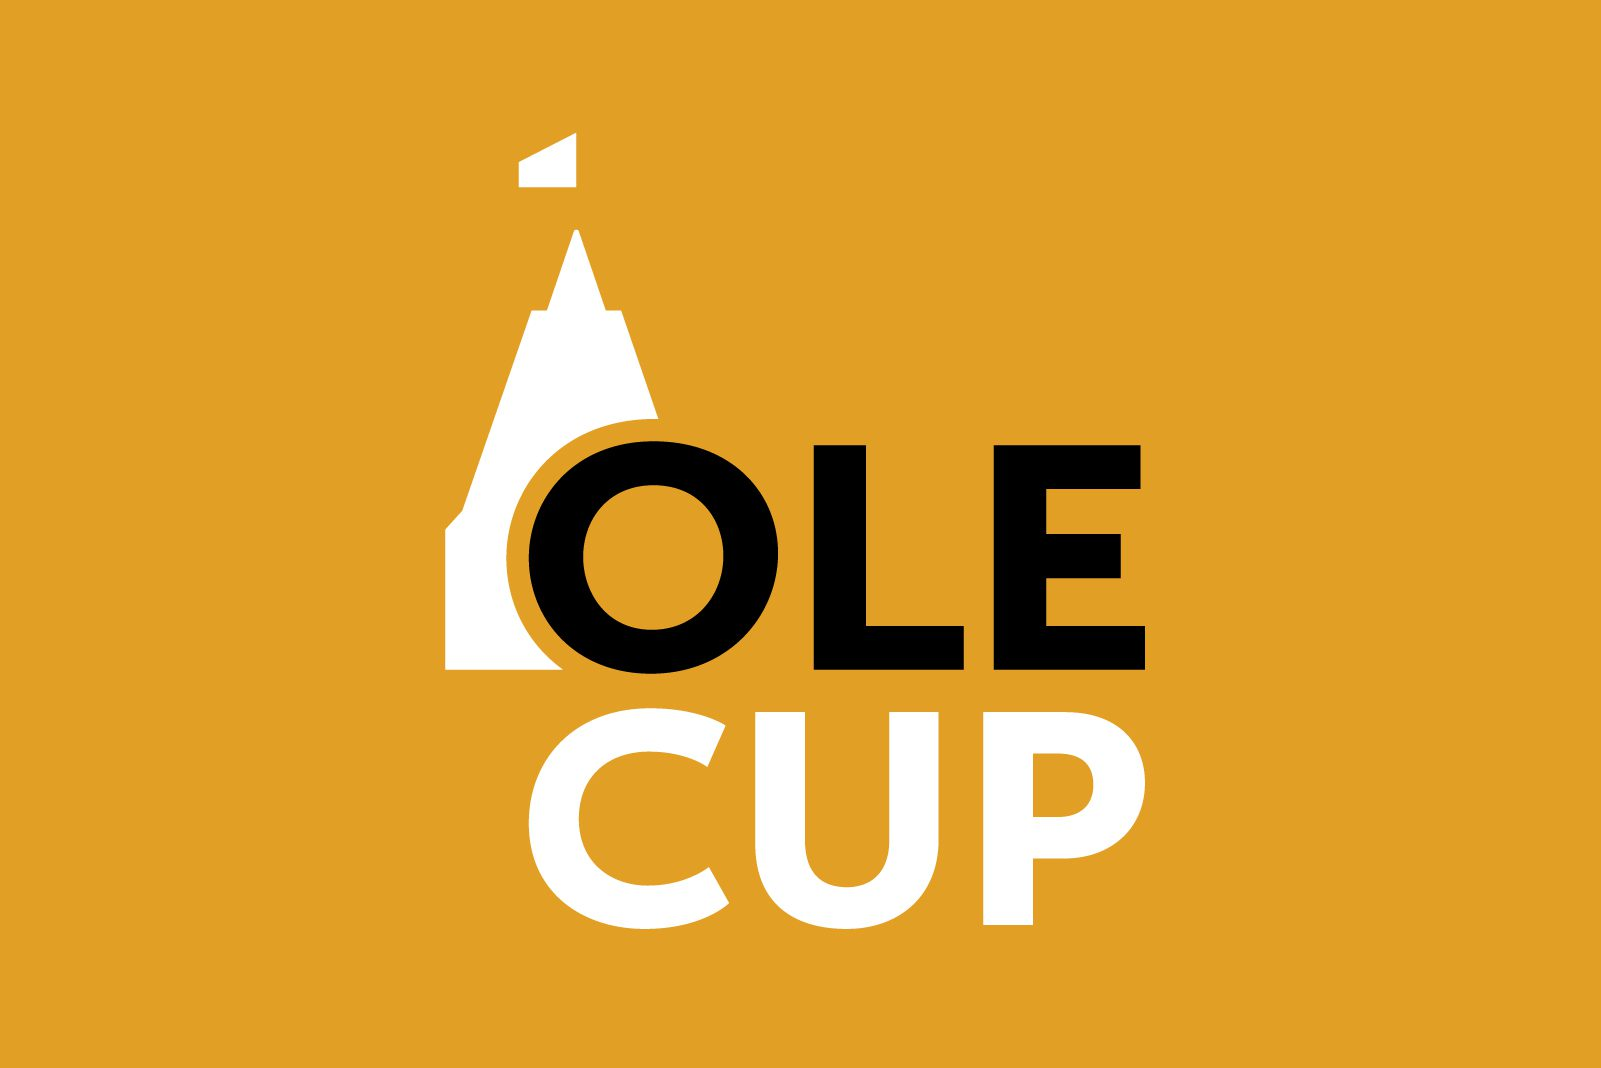 The Ole Cup at St. Olaf College